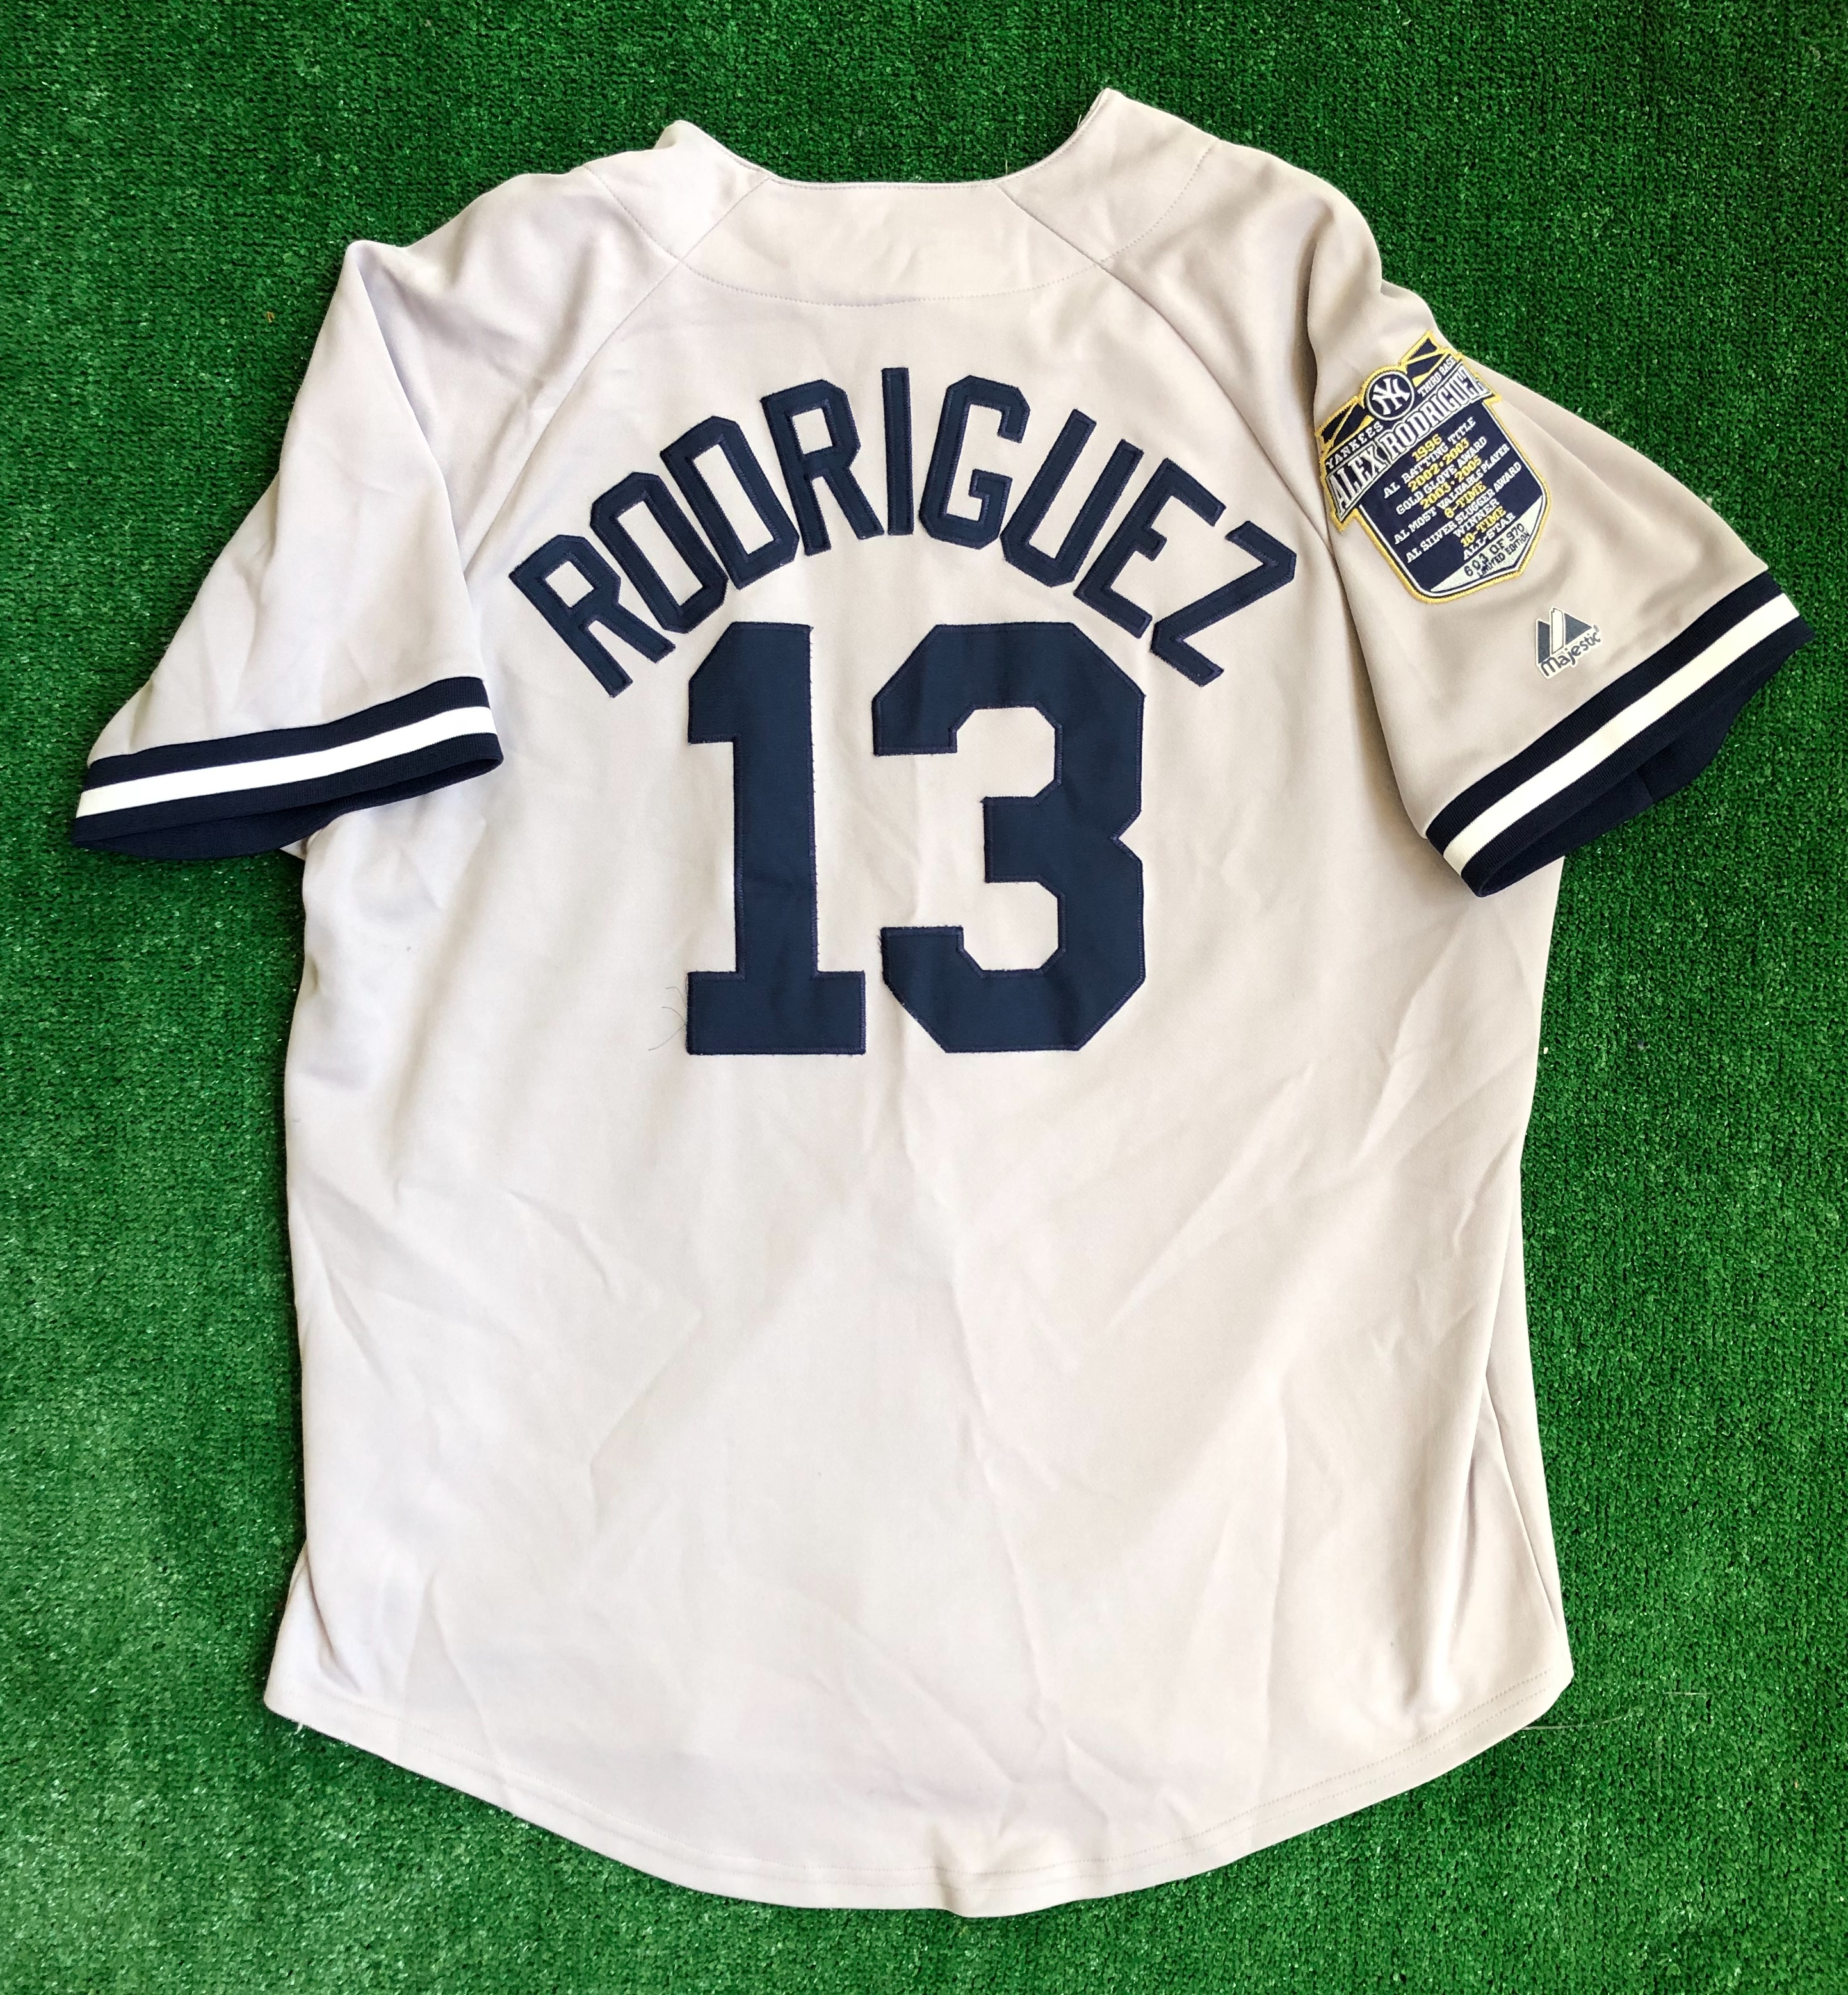 low priced cafb7 6a6a8 2006 Alex Rodriguez New York Yankees Limited Edition Majestic MLB Jersey  Size XL